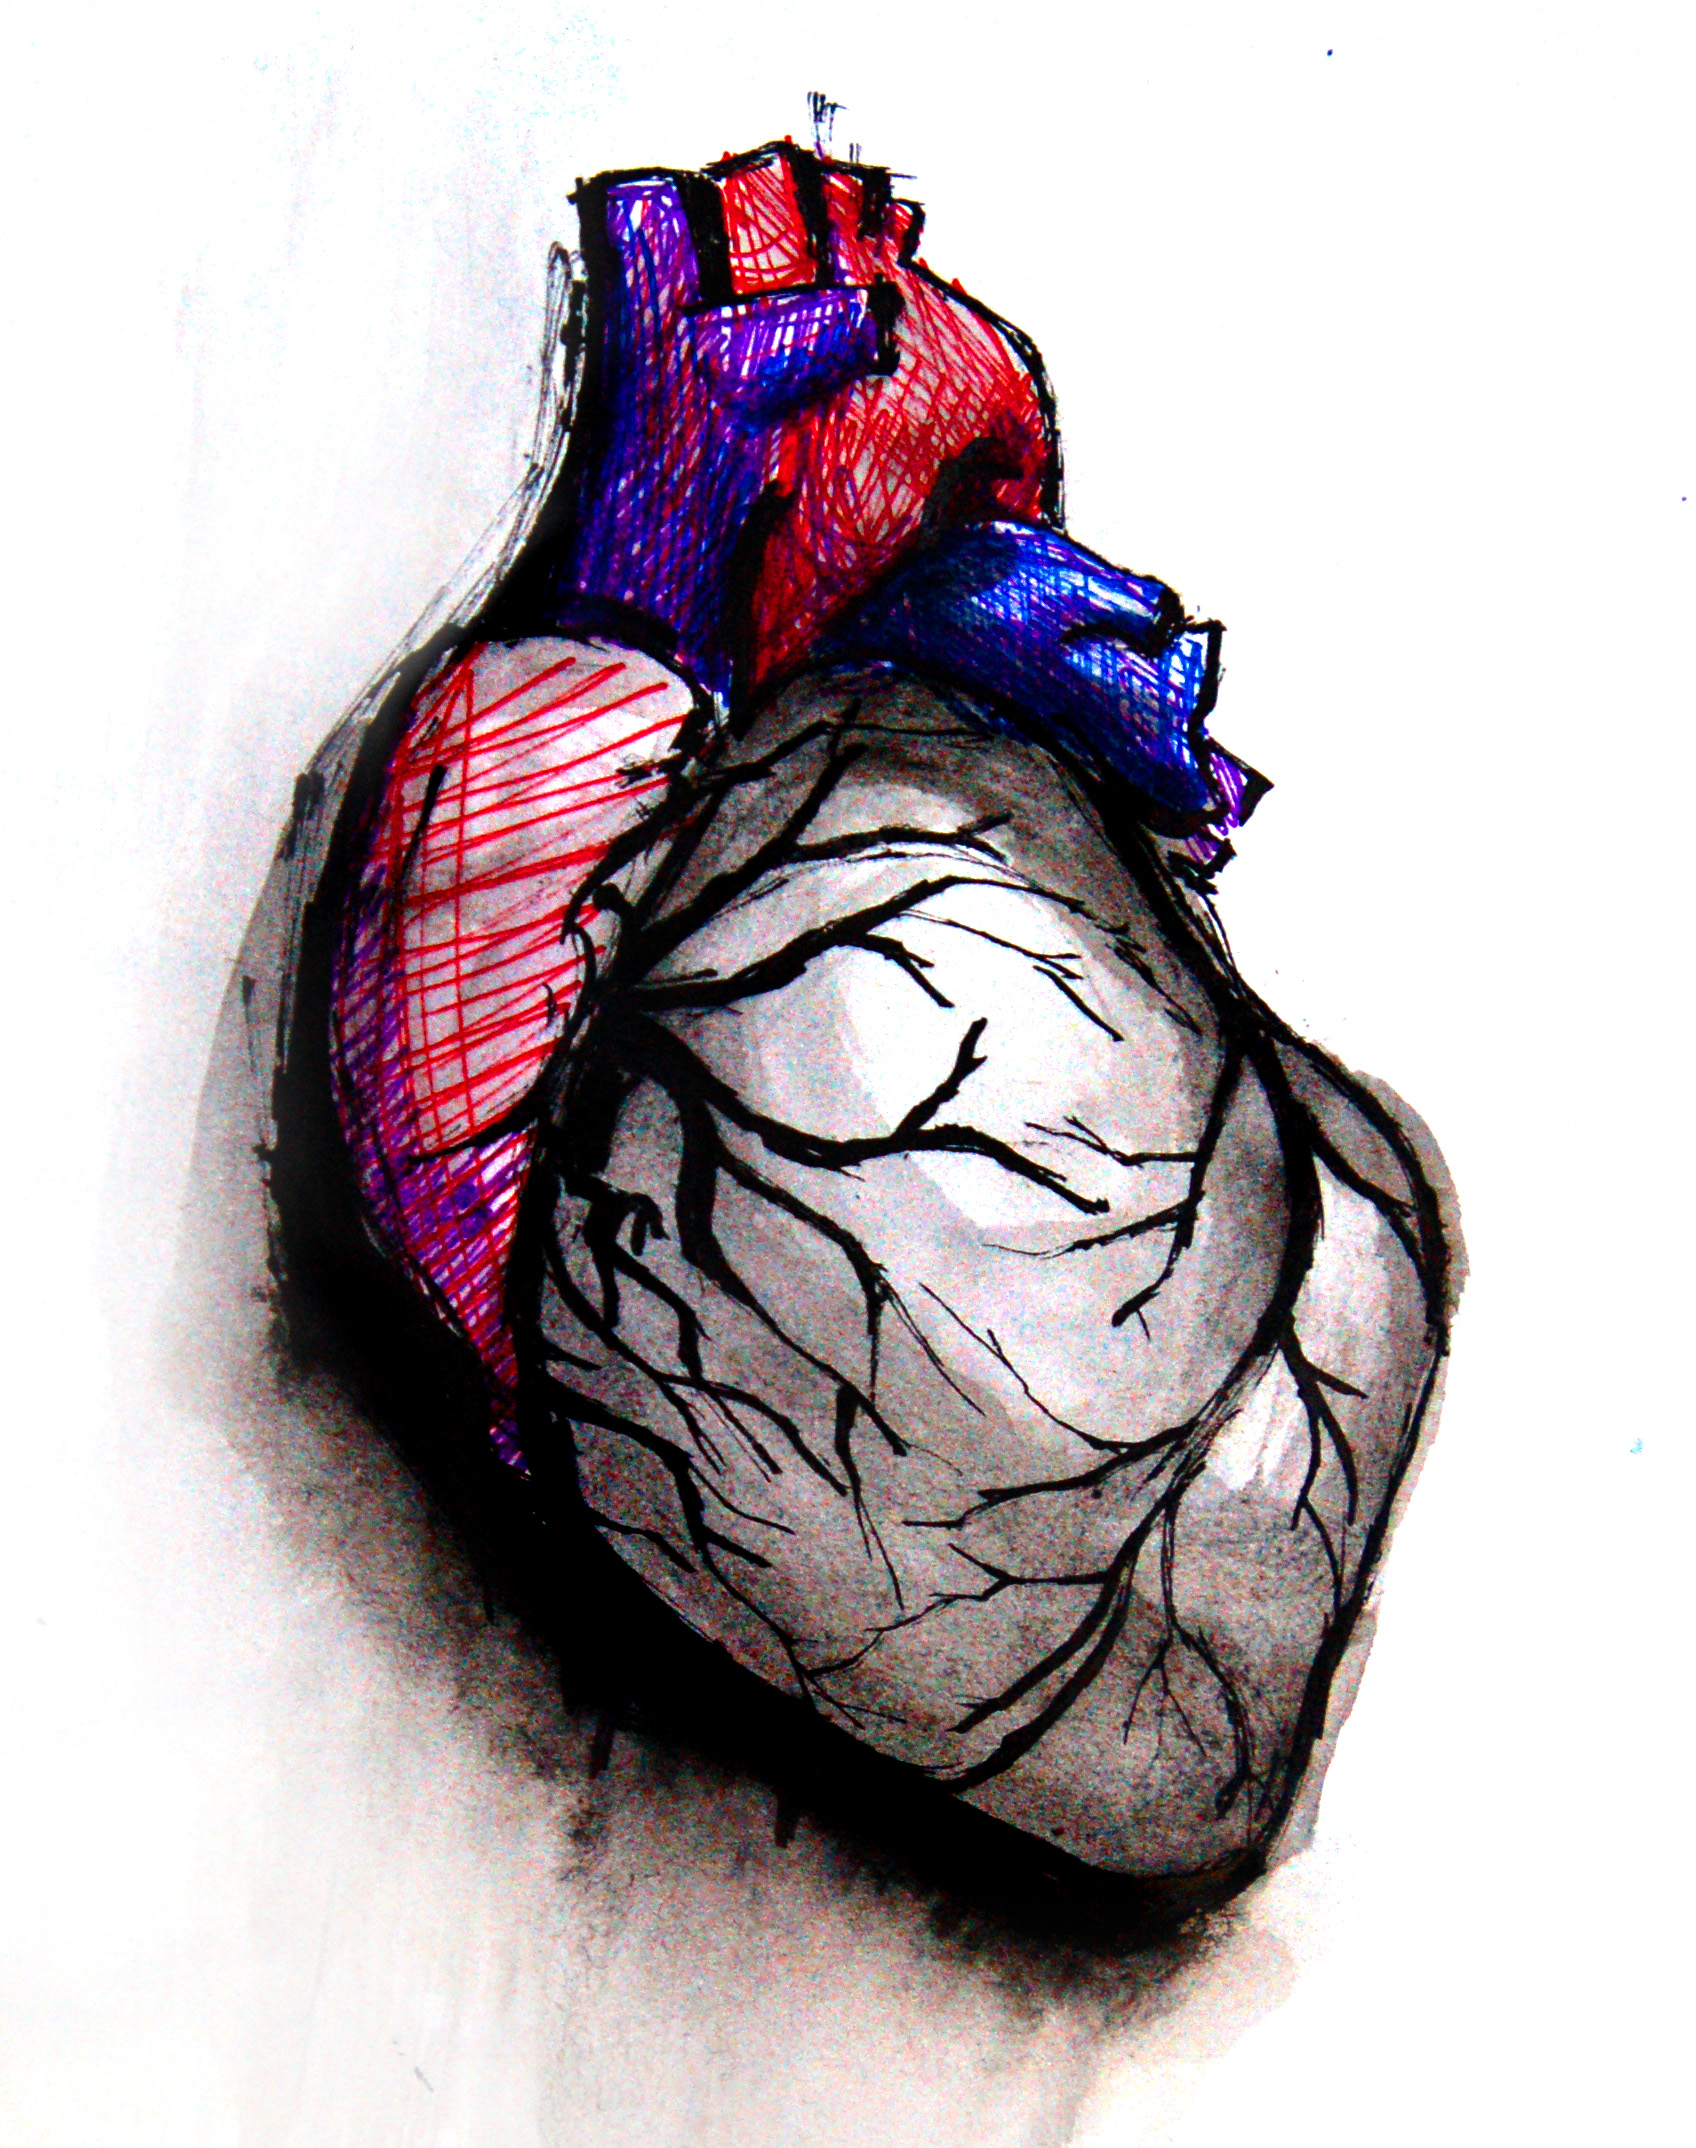 Drawn hearts art #13